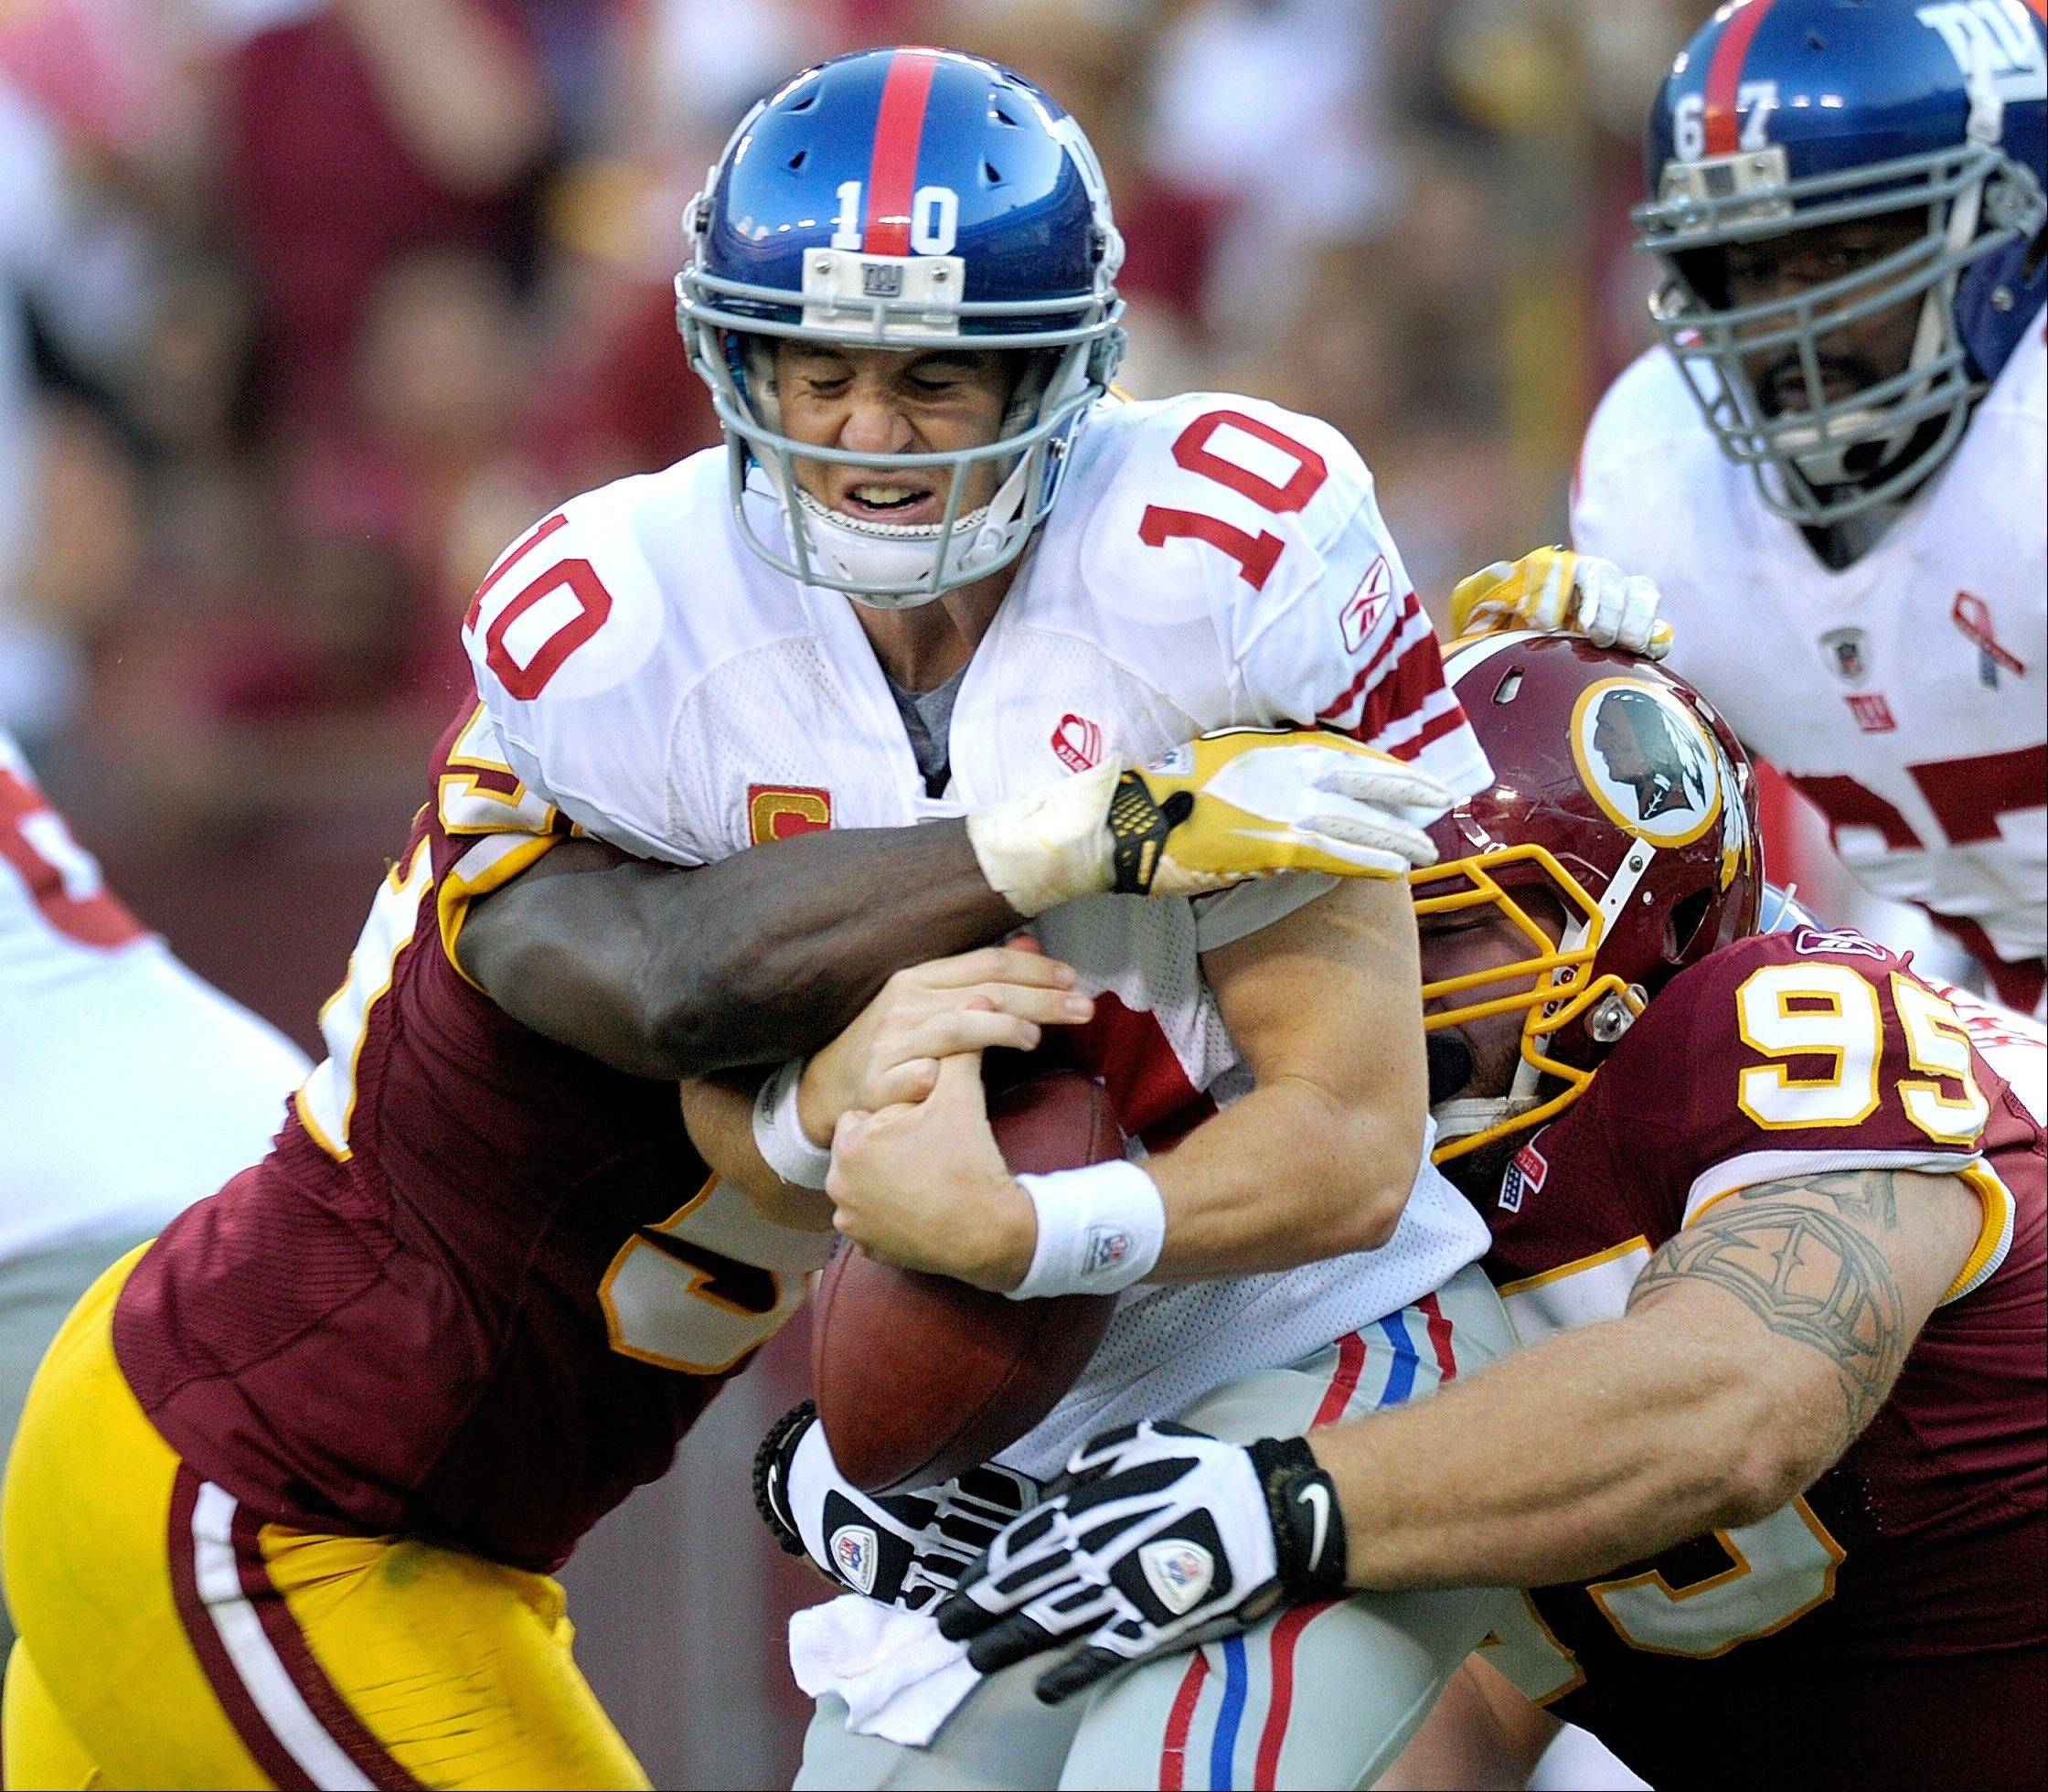 New York Giants quarterback Eli Manning is sacked by Washington Redskins linebacker London Fletcher, left, and nose tackle Chris Neild, right, during the second half Sunday.